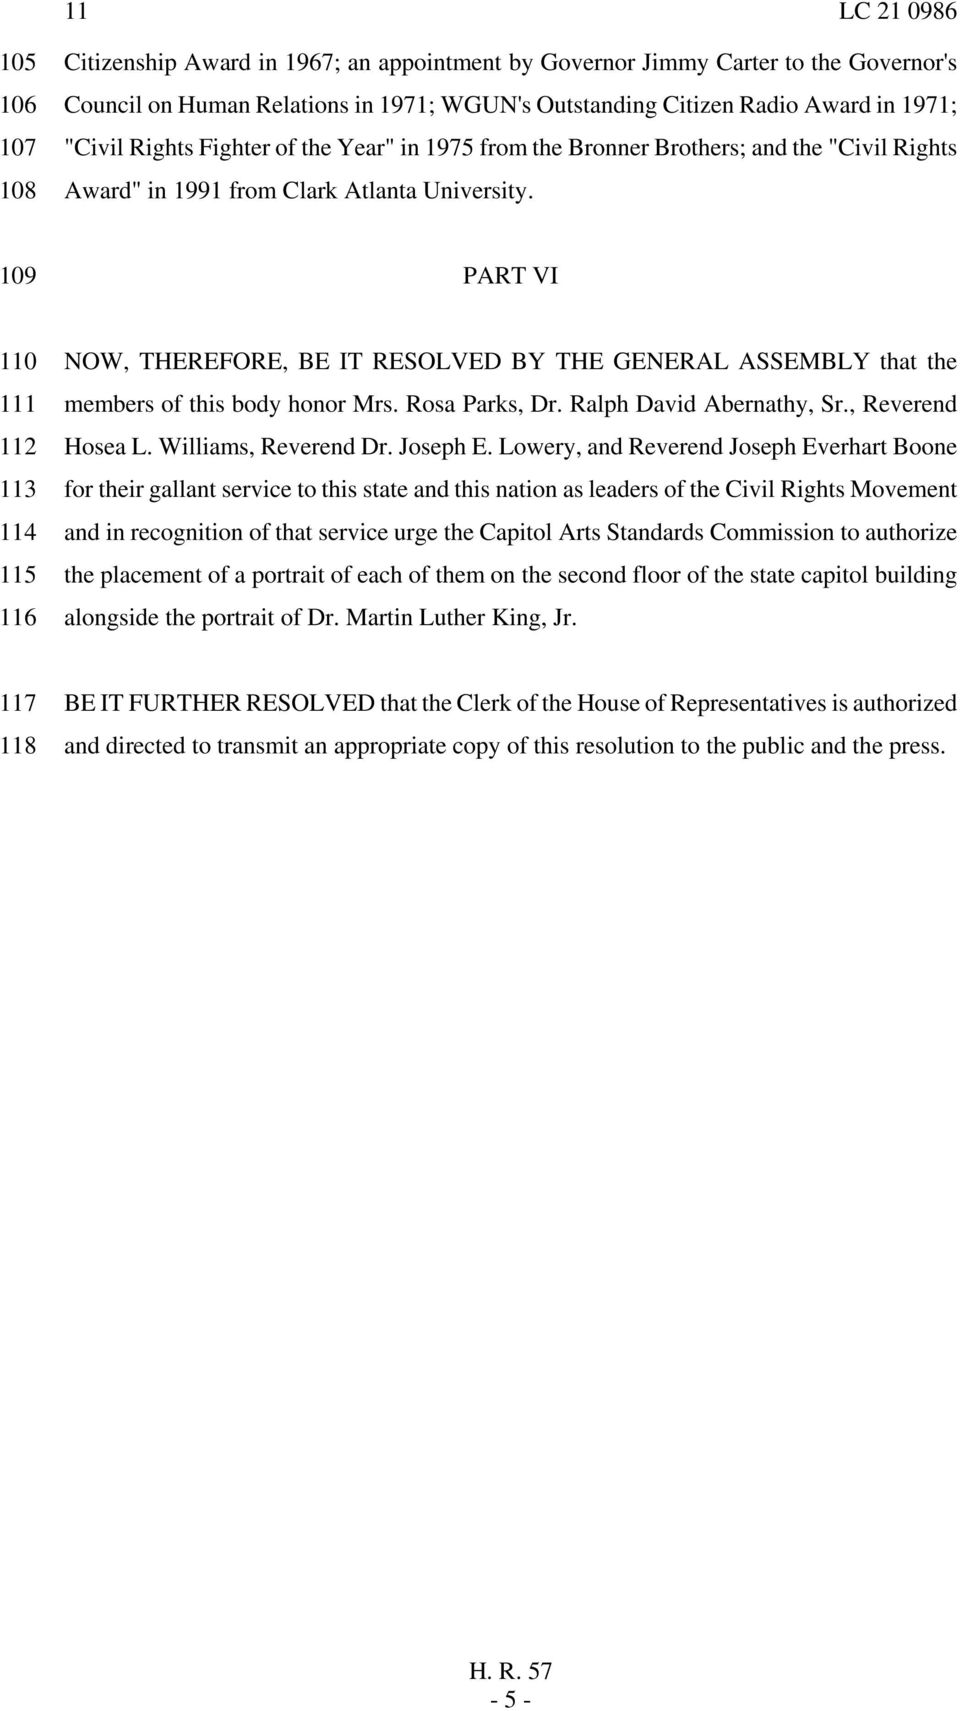 109 PART VI 110 111 112 113 114 115 116 NOW, THEREFORE, BE IT RESOLVED BY THE GENERAL ASSEMBLY that the members of this body honor Mrs. Rosa Parks, Dr. Ralph David Abernathy, Sr., Reverend Hosea L.